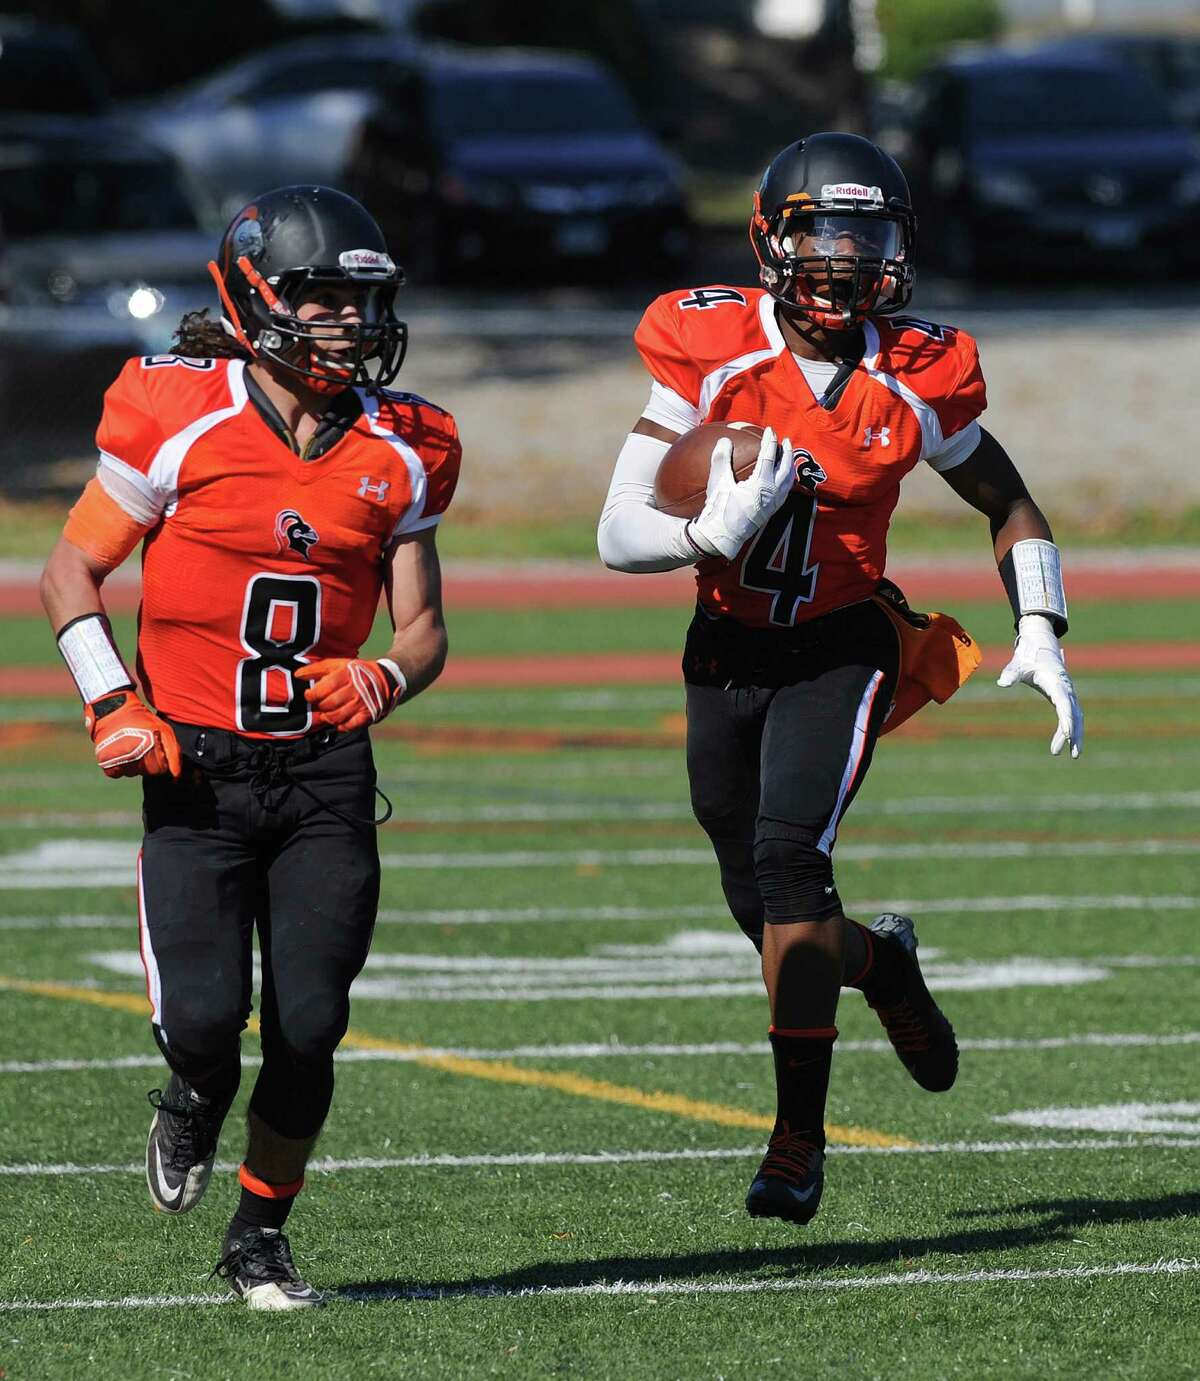 Stamford's Guyeens Antoine carries the ball during Saturday's game at Stamford High School on September 27, 2014.